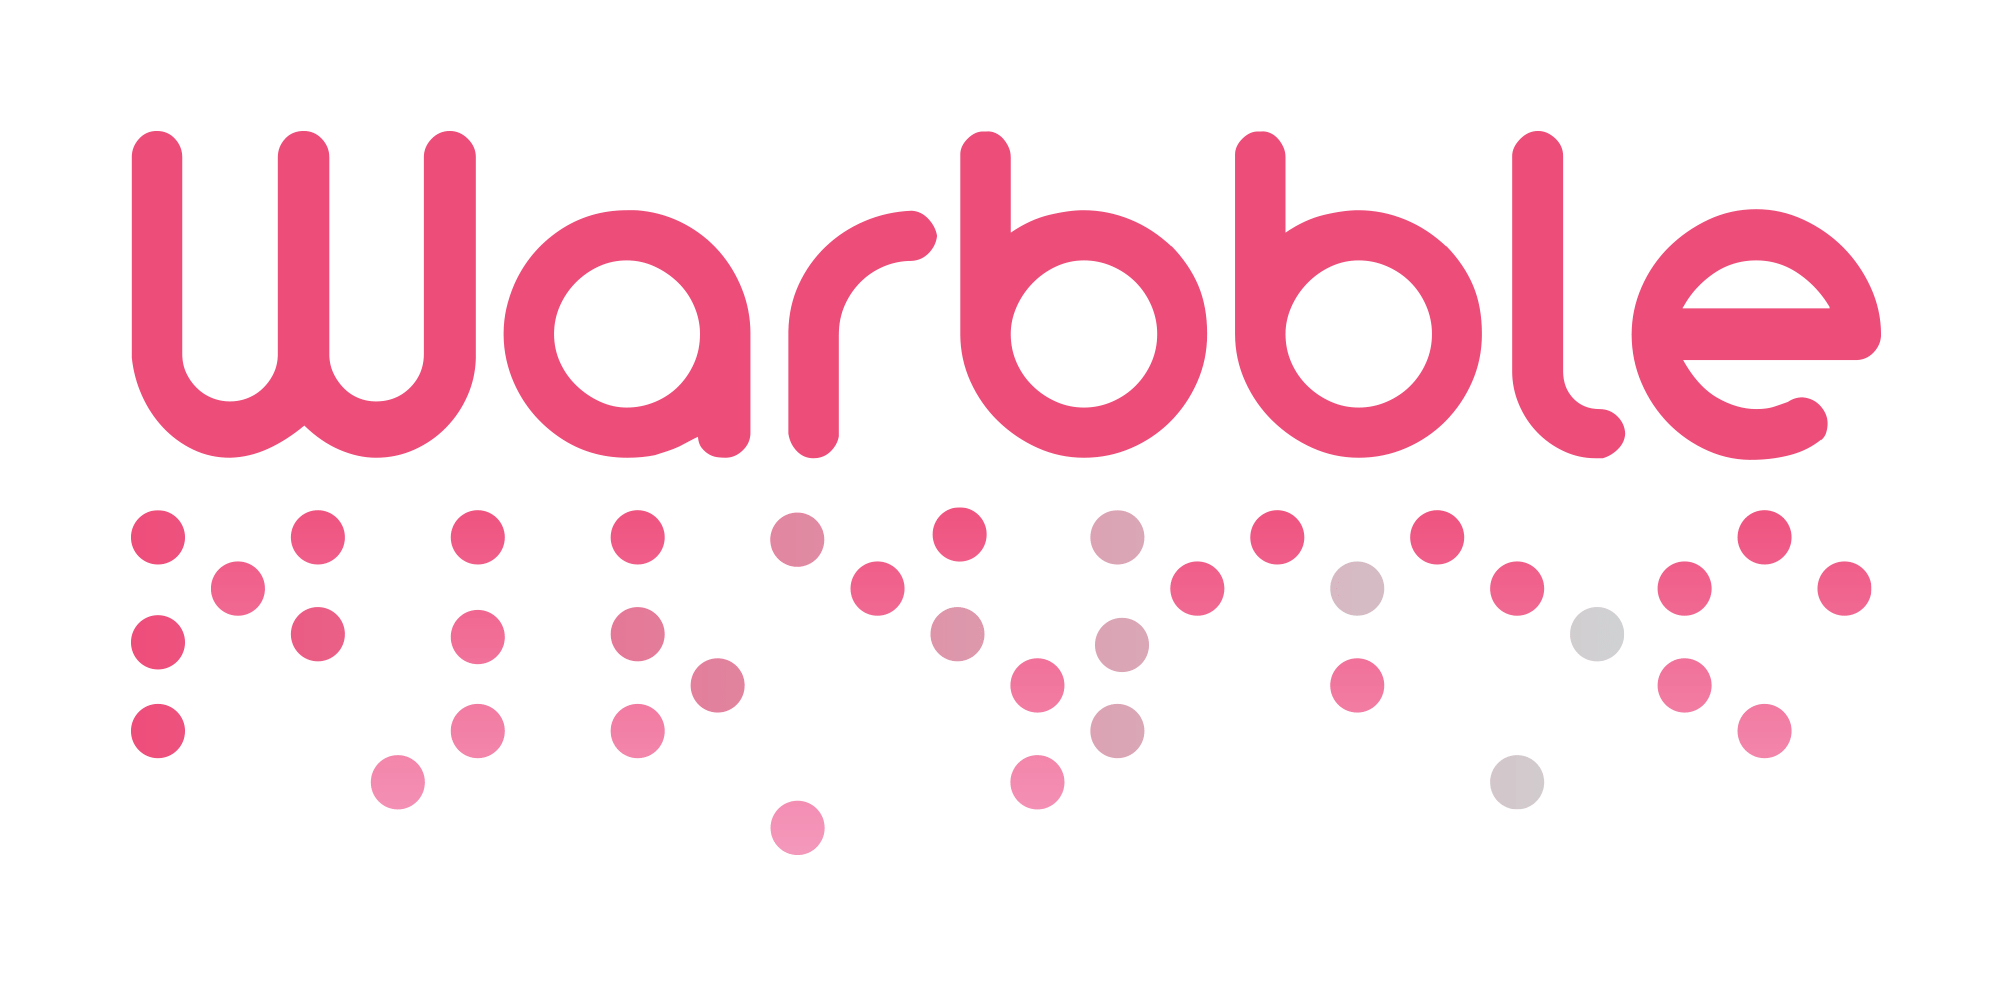 warbble